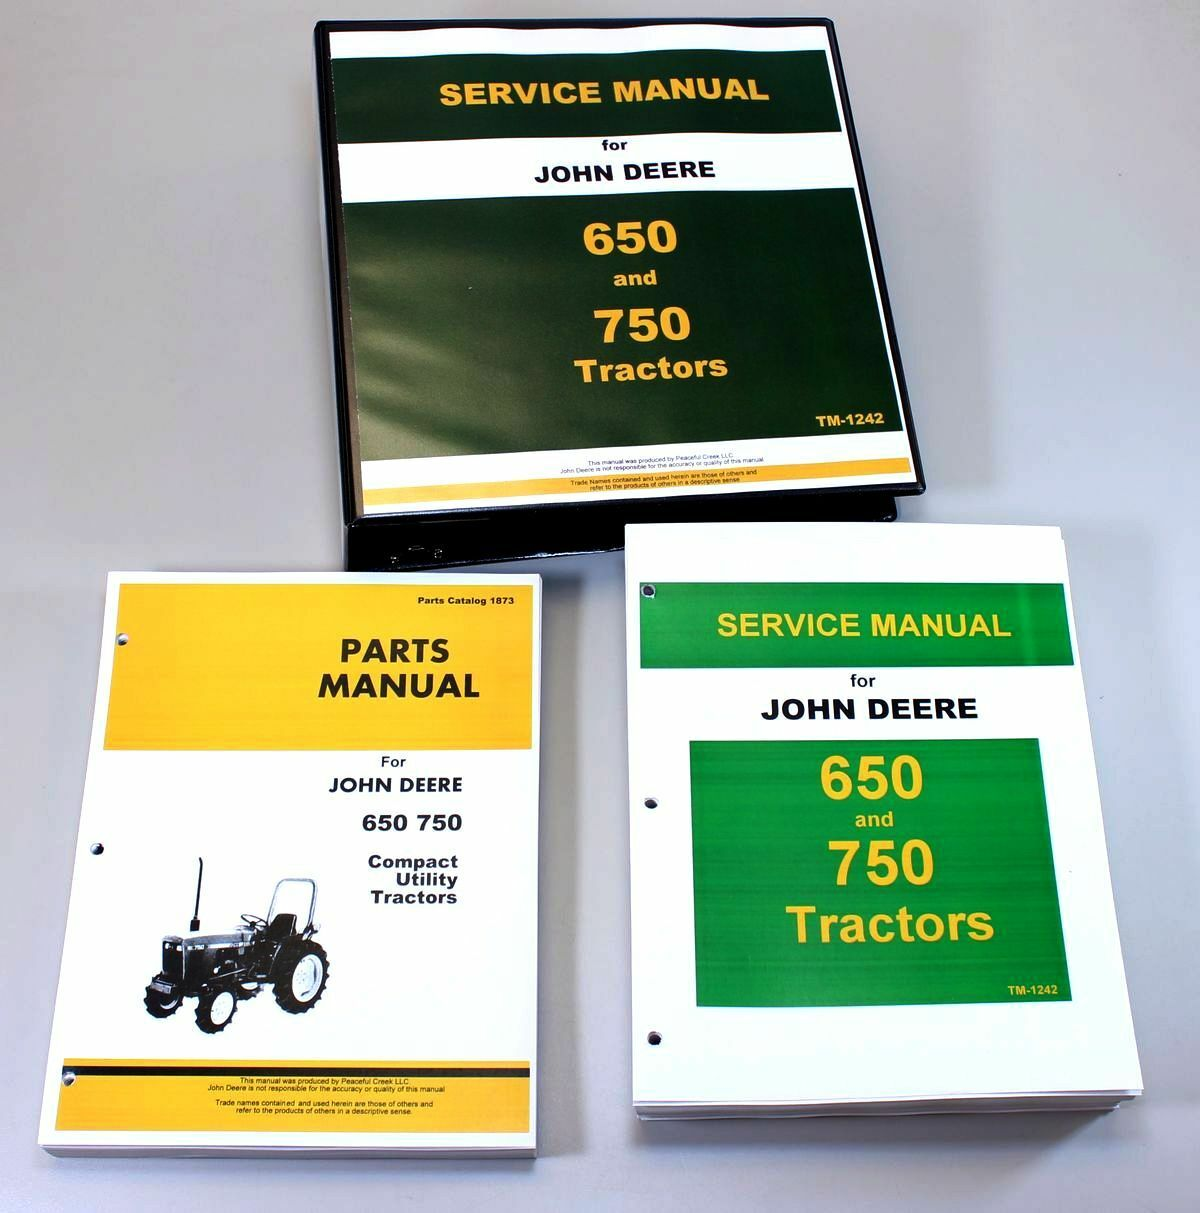 Service Manual Set For John Deere 650 750 Tractor Parts Catalog Tech Repair  Book 1 of 10FREE Shipping ...